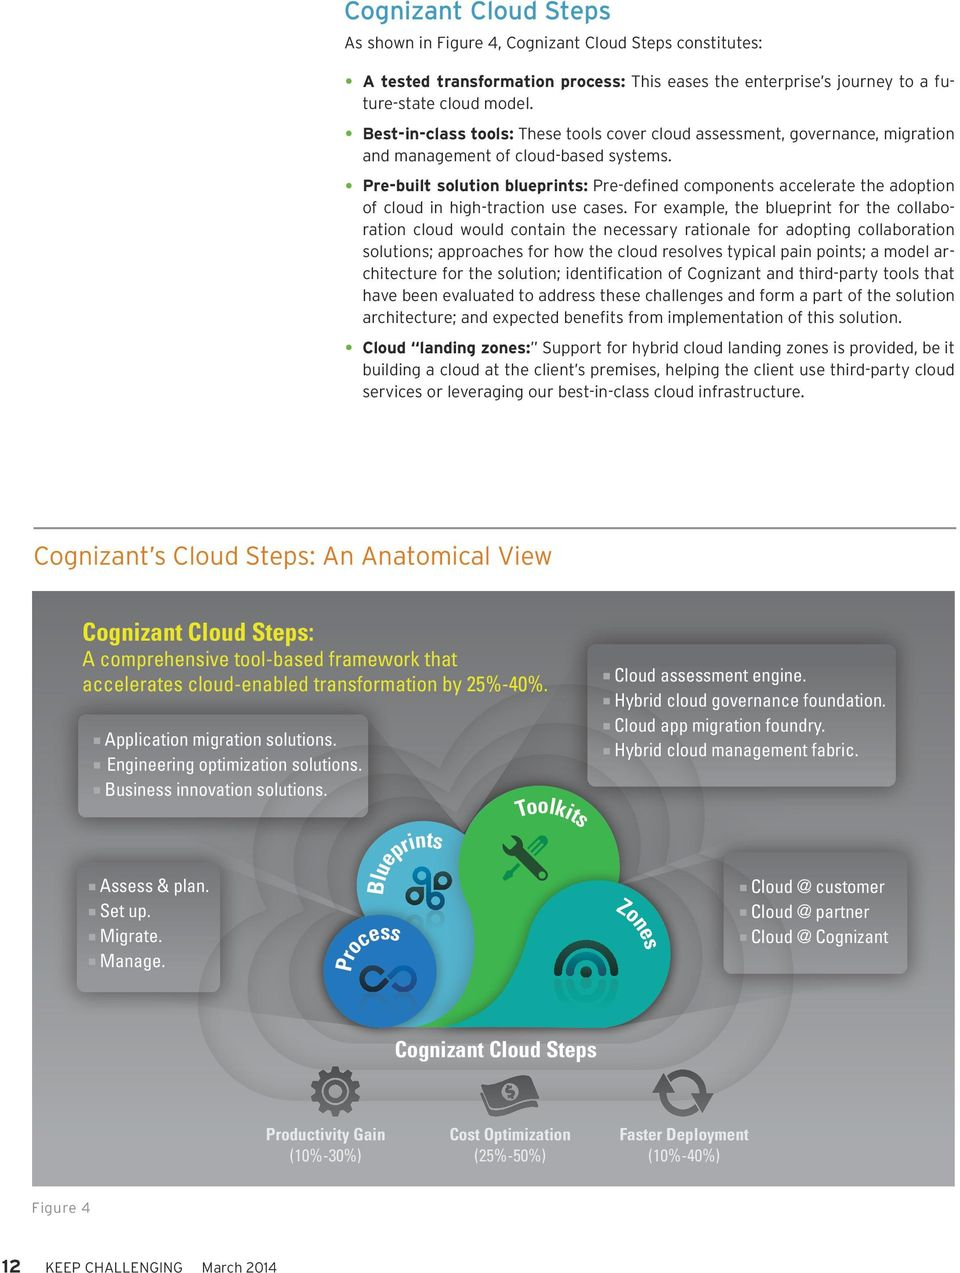 Pre-built solution blueprints: Pre-defined components accelerate the adoption of cloud in high-traction use cases.